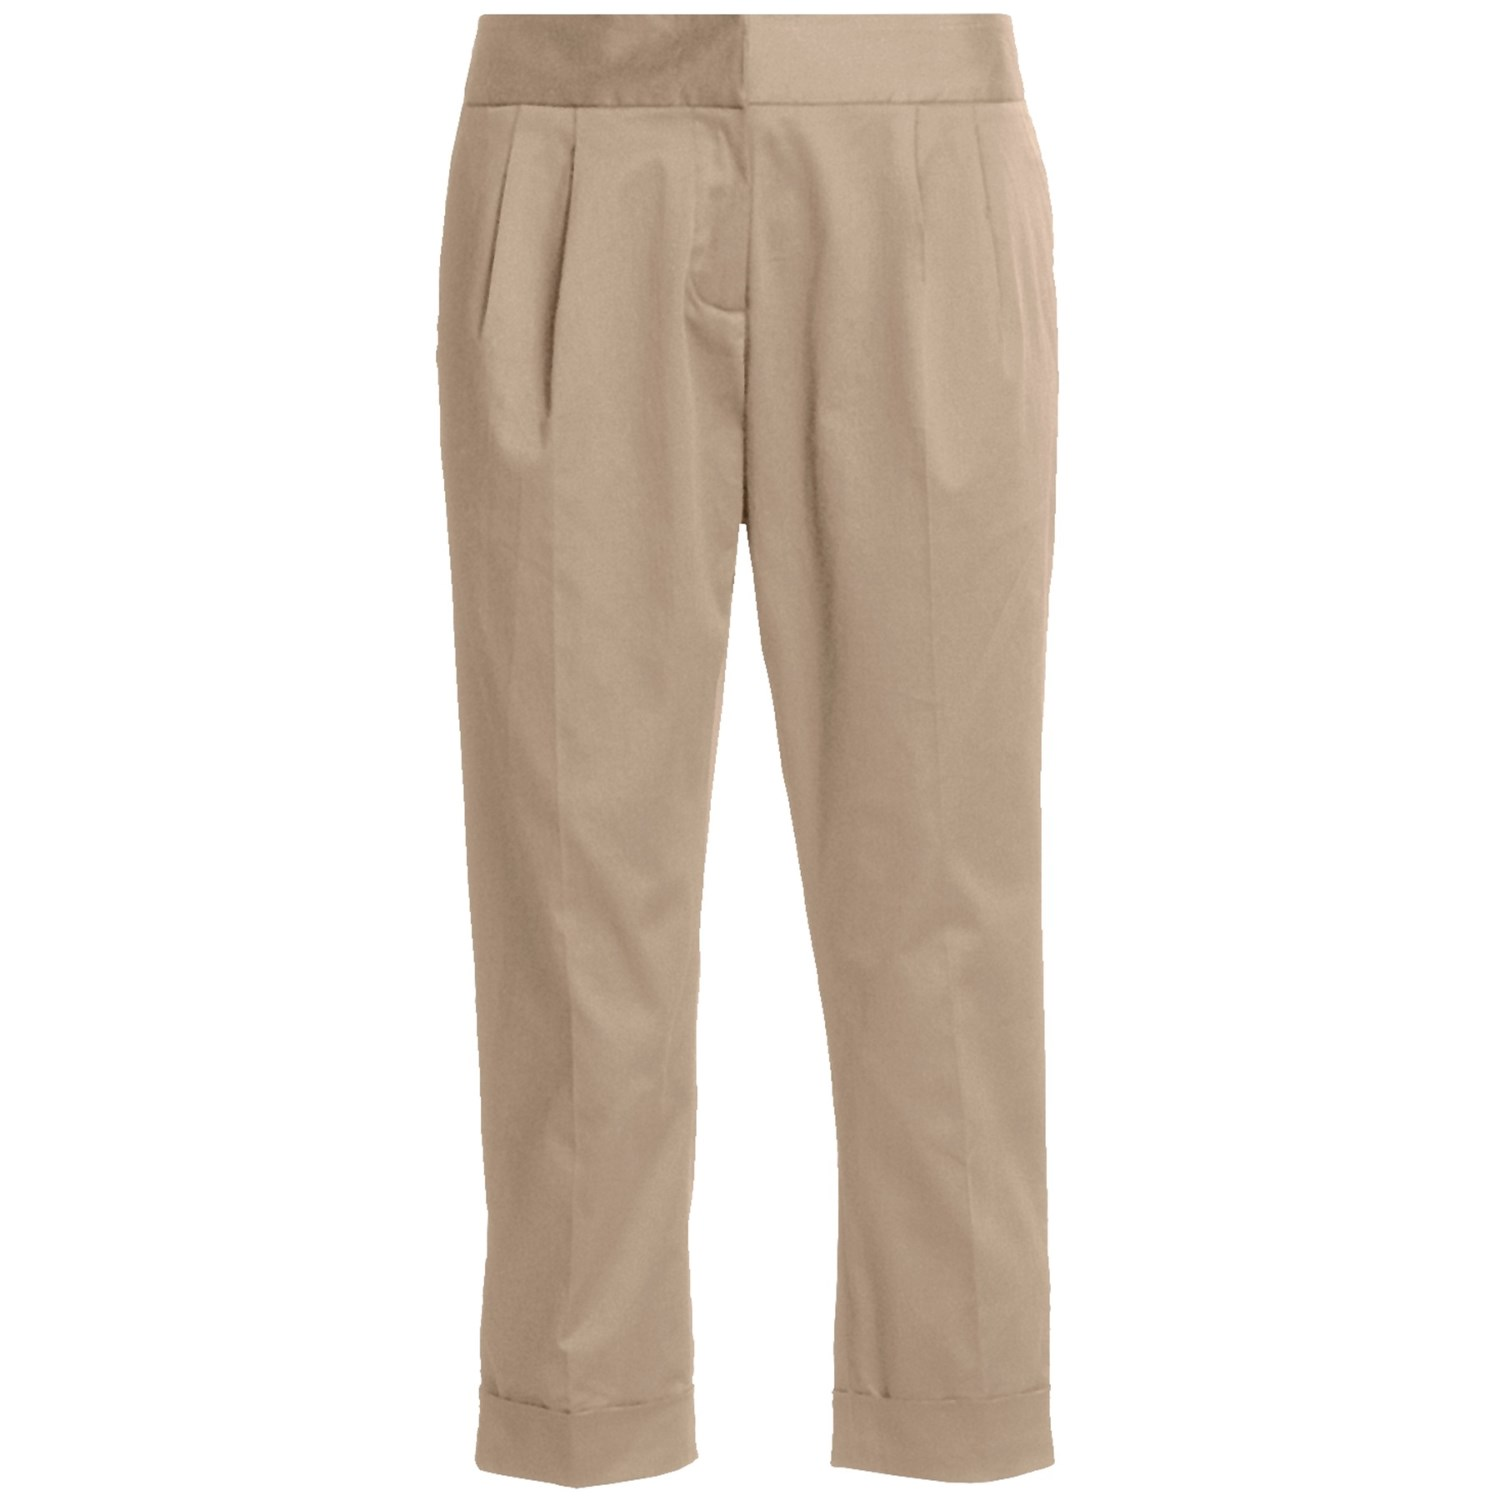 Elegant Quality Like New Khaki Pants By Northcrest 2&quot Belt Loops Side Seam Pockets, Coin Pocket And One Rear Buttoned Pocket Classic Tapered Leg 100% Cotton Machine Washable Tag Size 16Tall Actual Measurements Waist 33&quot, Hips 46&quot,